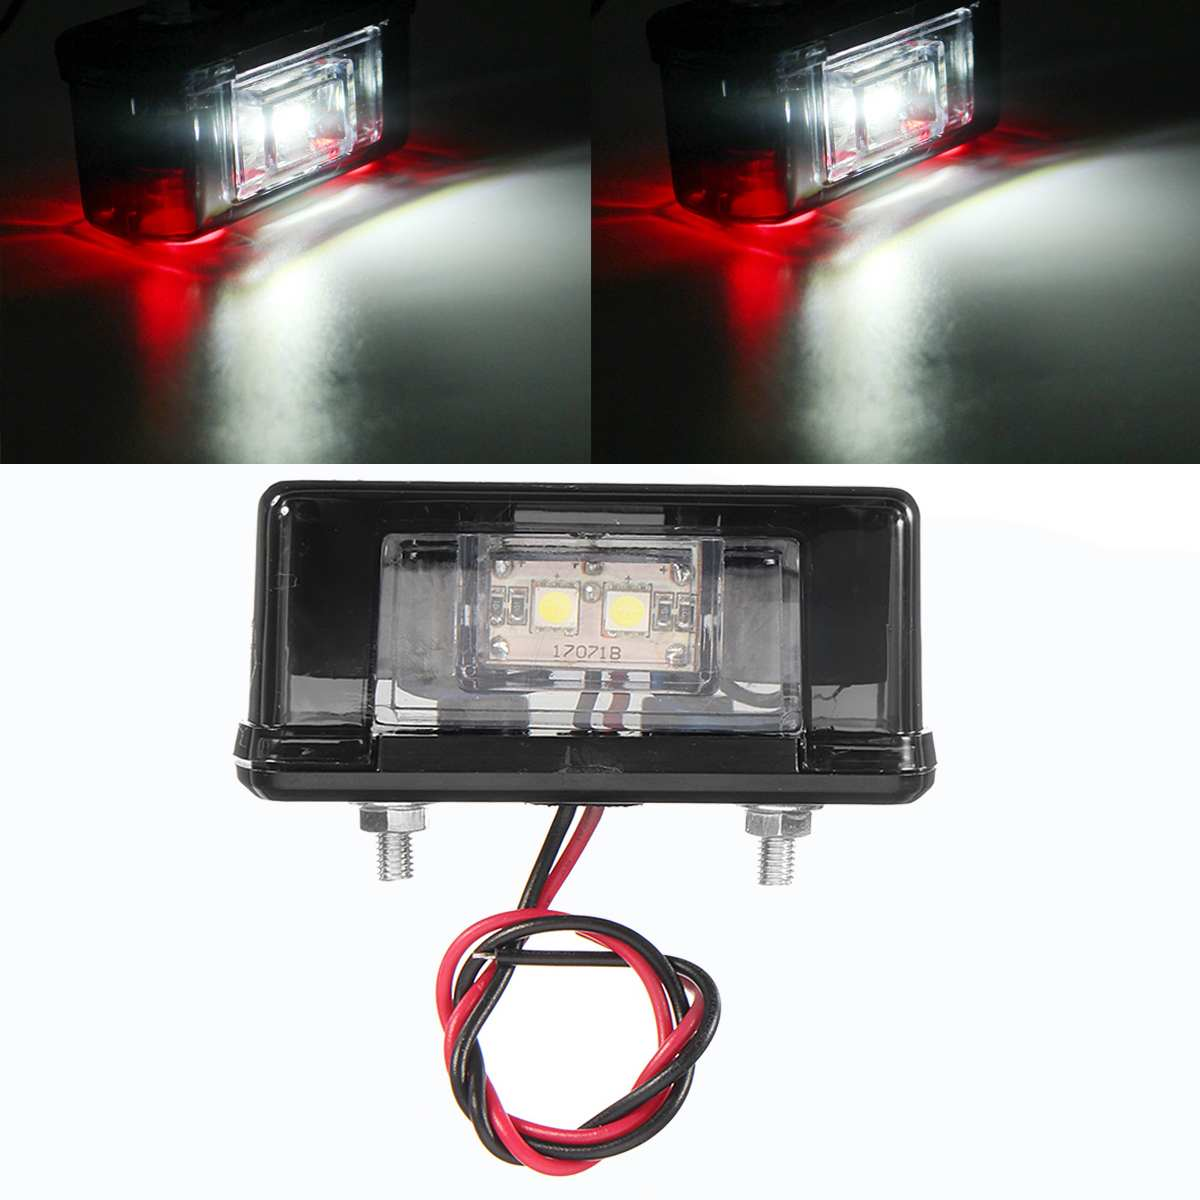 LED Car License Plate Light 12V 24V 4 SMD Waterproof Car Rear Number Licence Plate Lights Lamp Universal For Truck Trailer Lorry